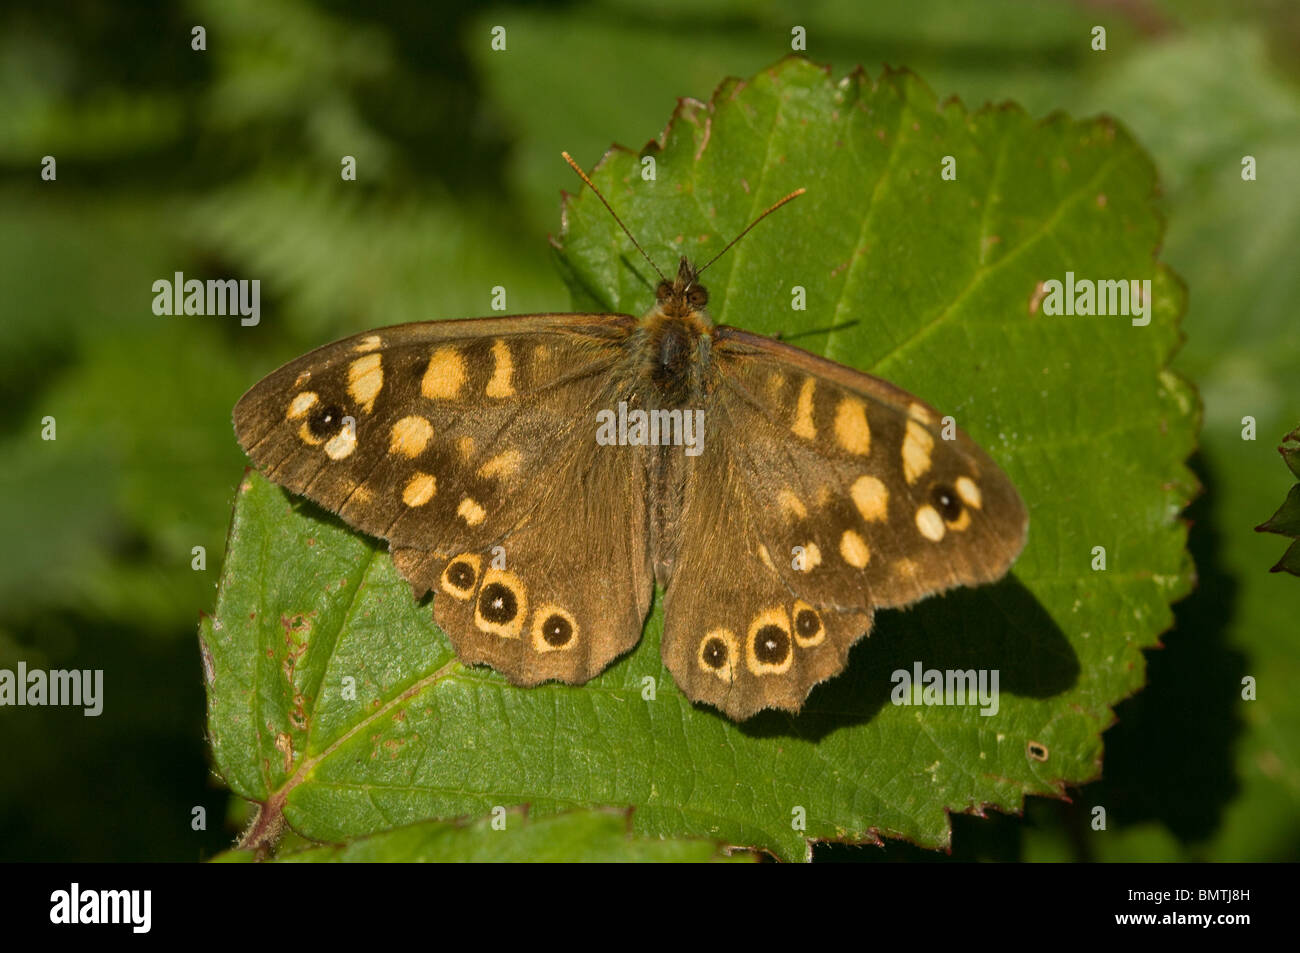 Speckled wood butterfly, Pararge aegeria, Britanny. France, Europe - Stock Image